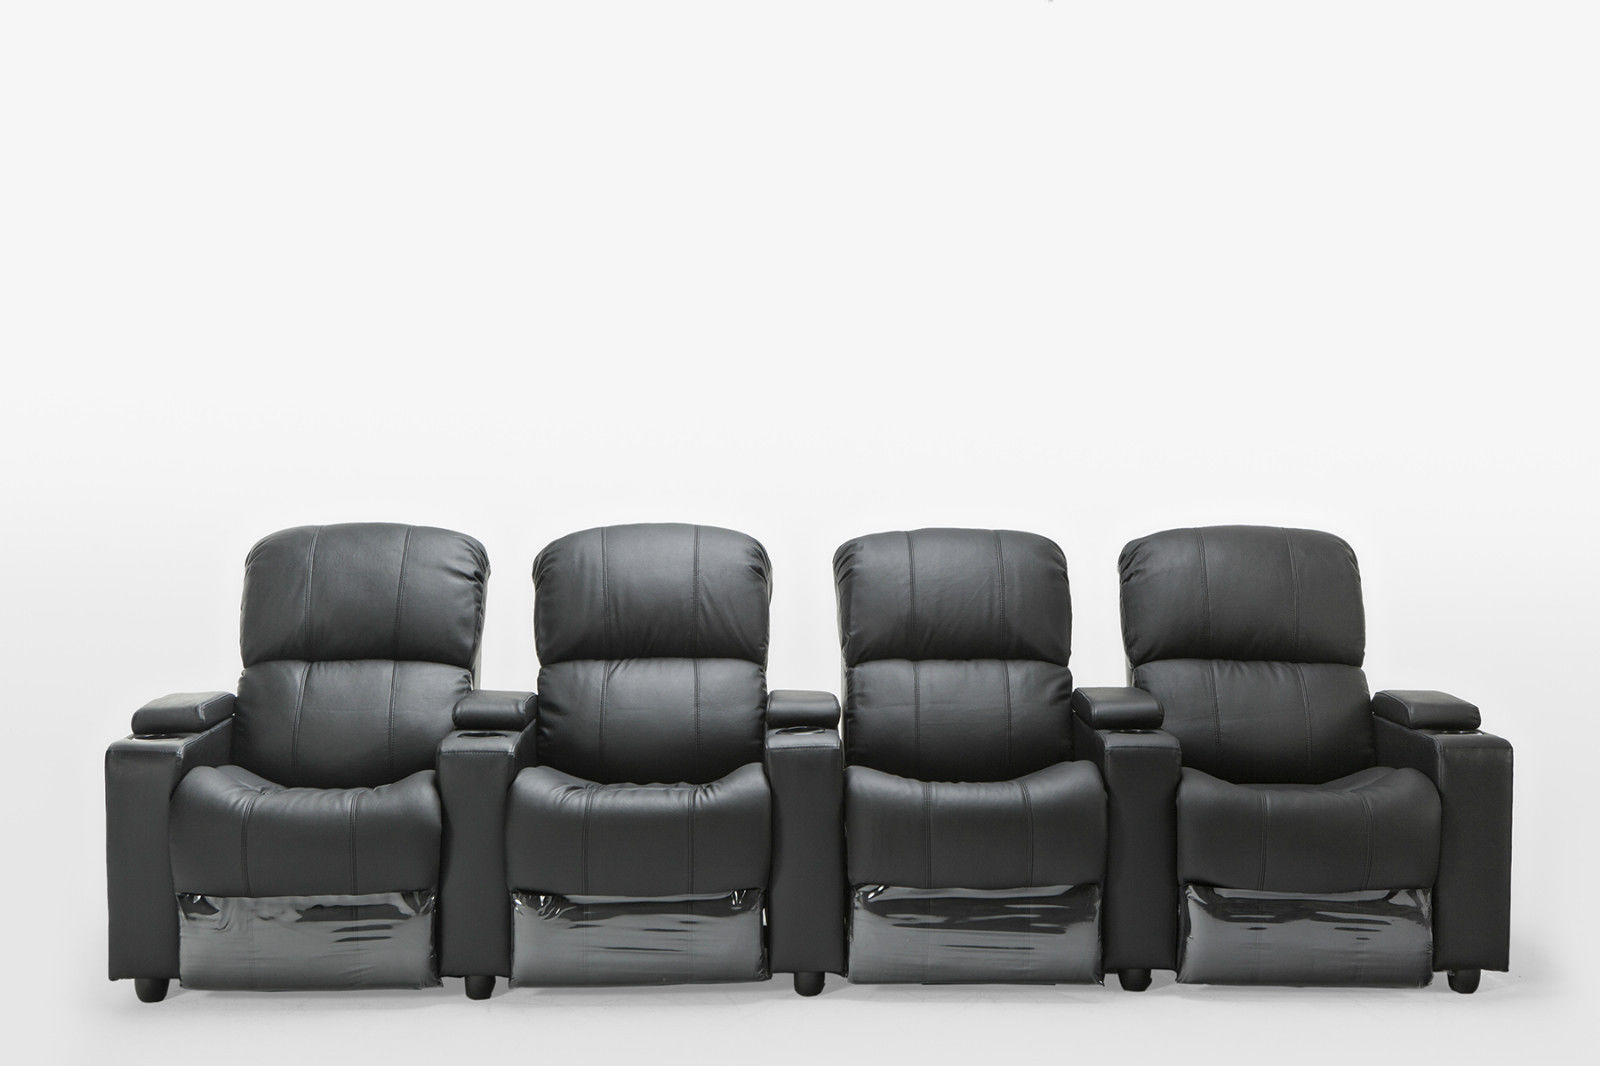 Details about Sophie Leather 4 Seater Home Theatre Recliner Sofa Lounge  with Cup Holders